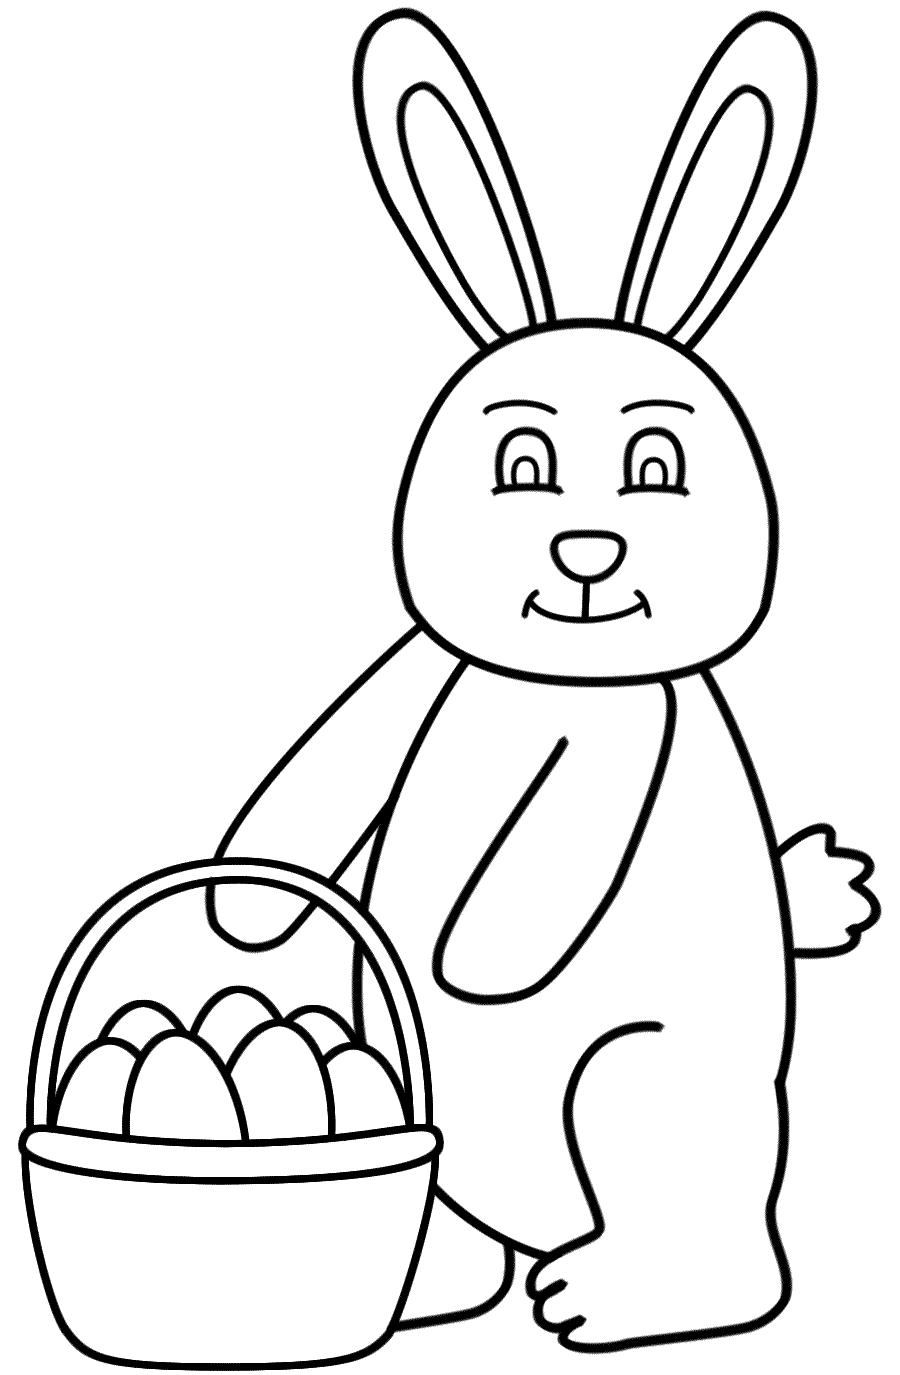 Easter Bunny Holding Basket Of Eggs - Coloring Page (Easter ...